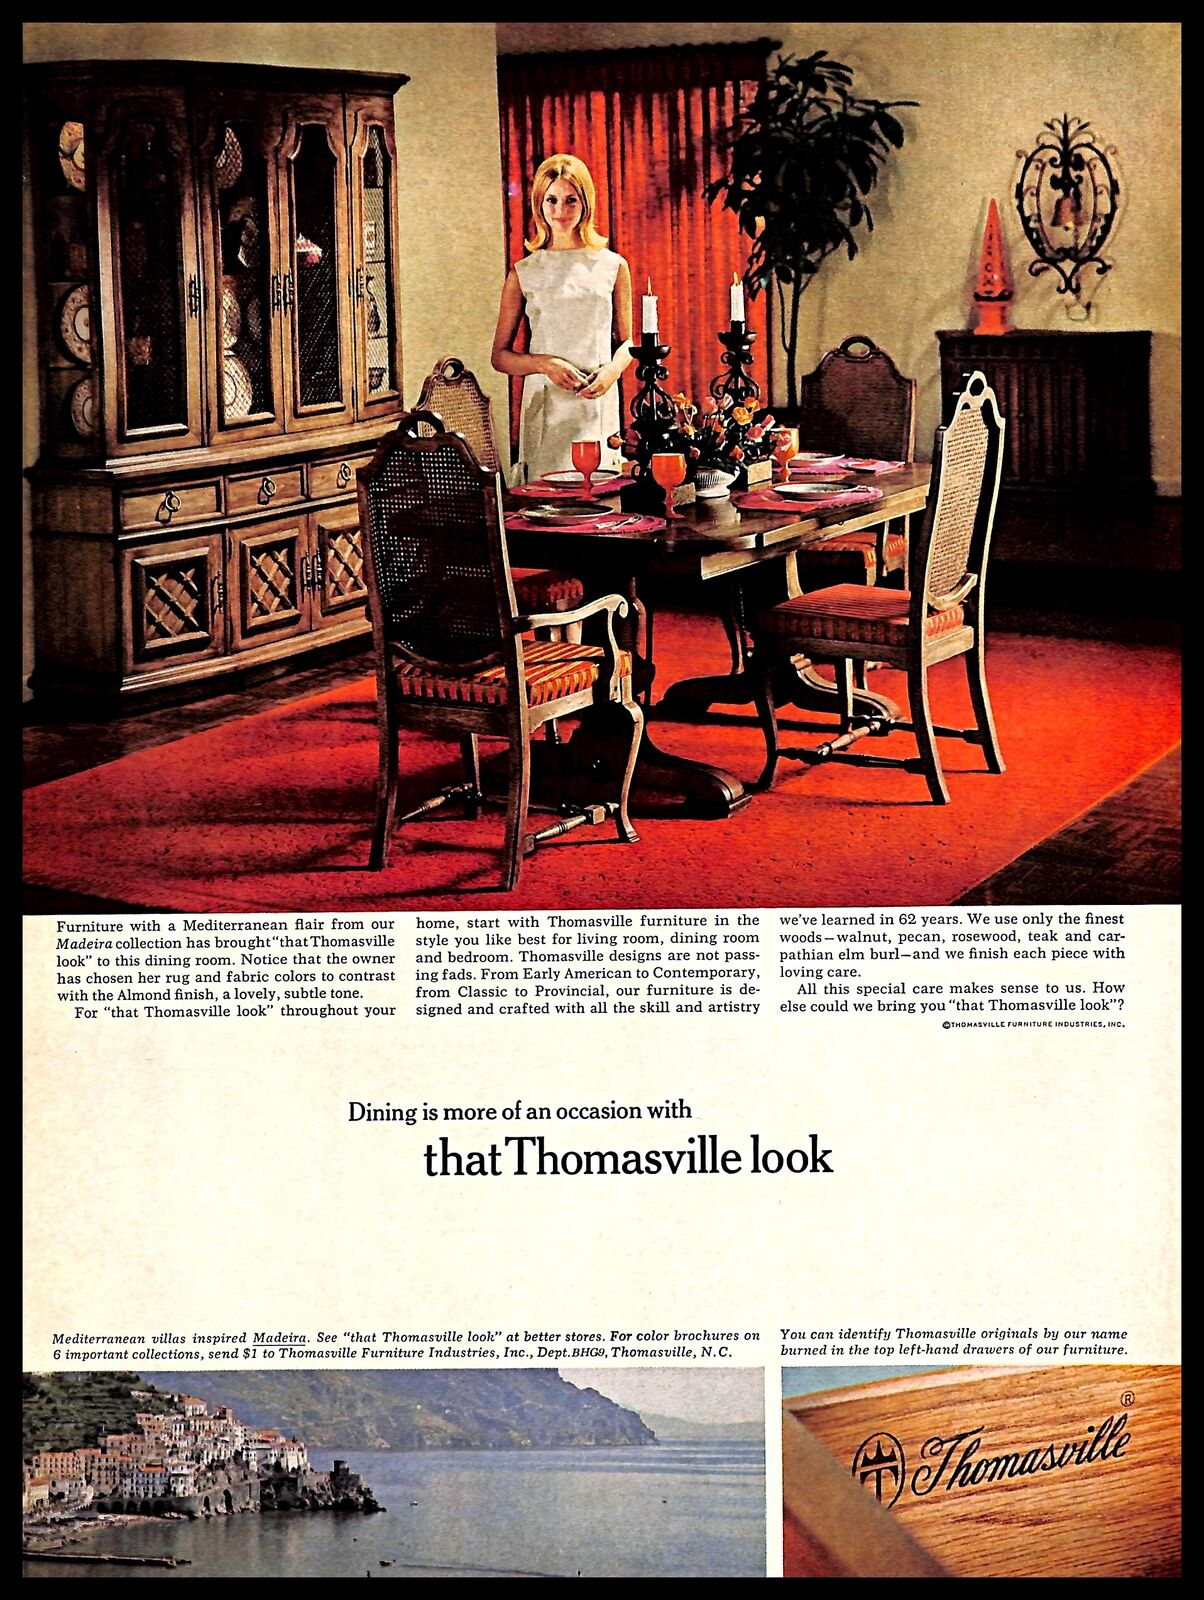 Details About 1966 Thomasville Furniture Vintage Print Ad Mediterranean Style Wood Dining Room